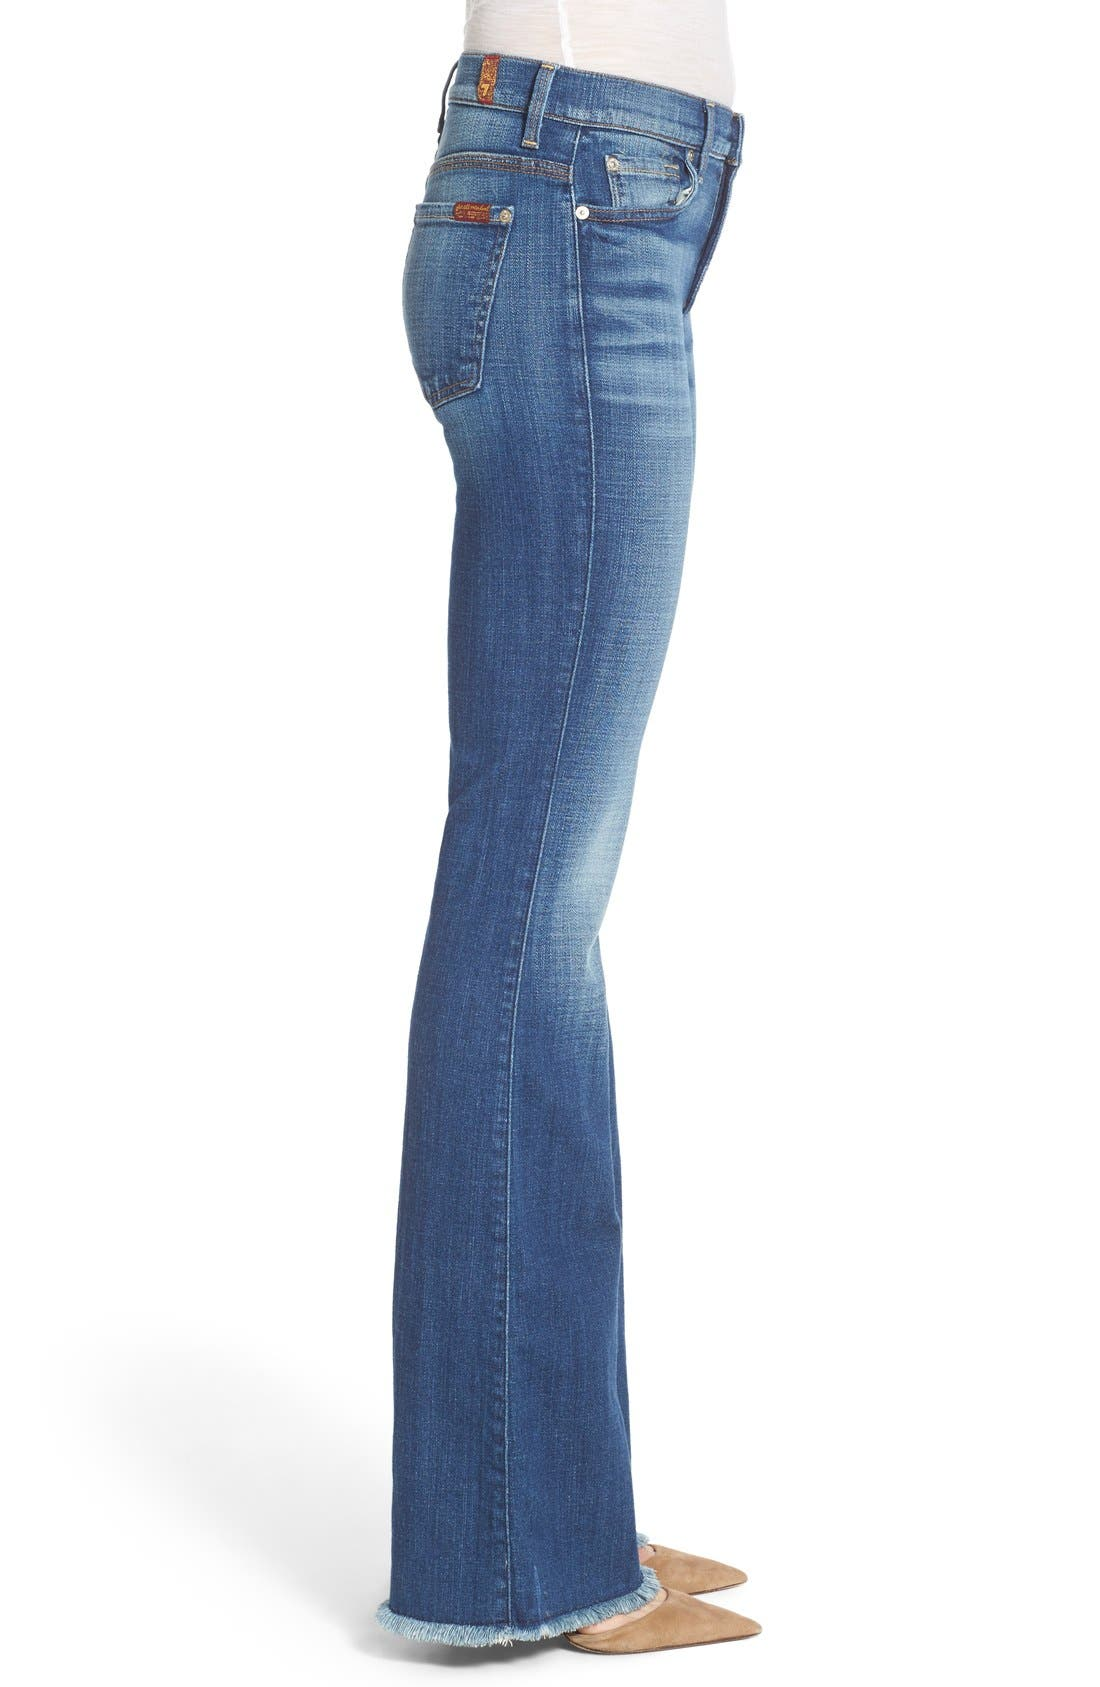 Alternate Image 3  - 7 For All Mankind® 'Ginger' High Rise Raw Hem Flare Jeans (Athens Broken Twill)